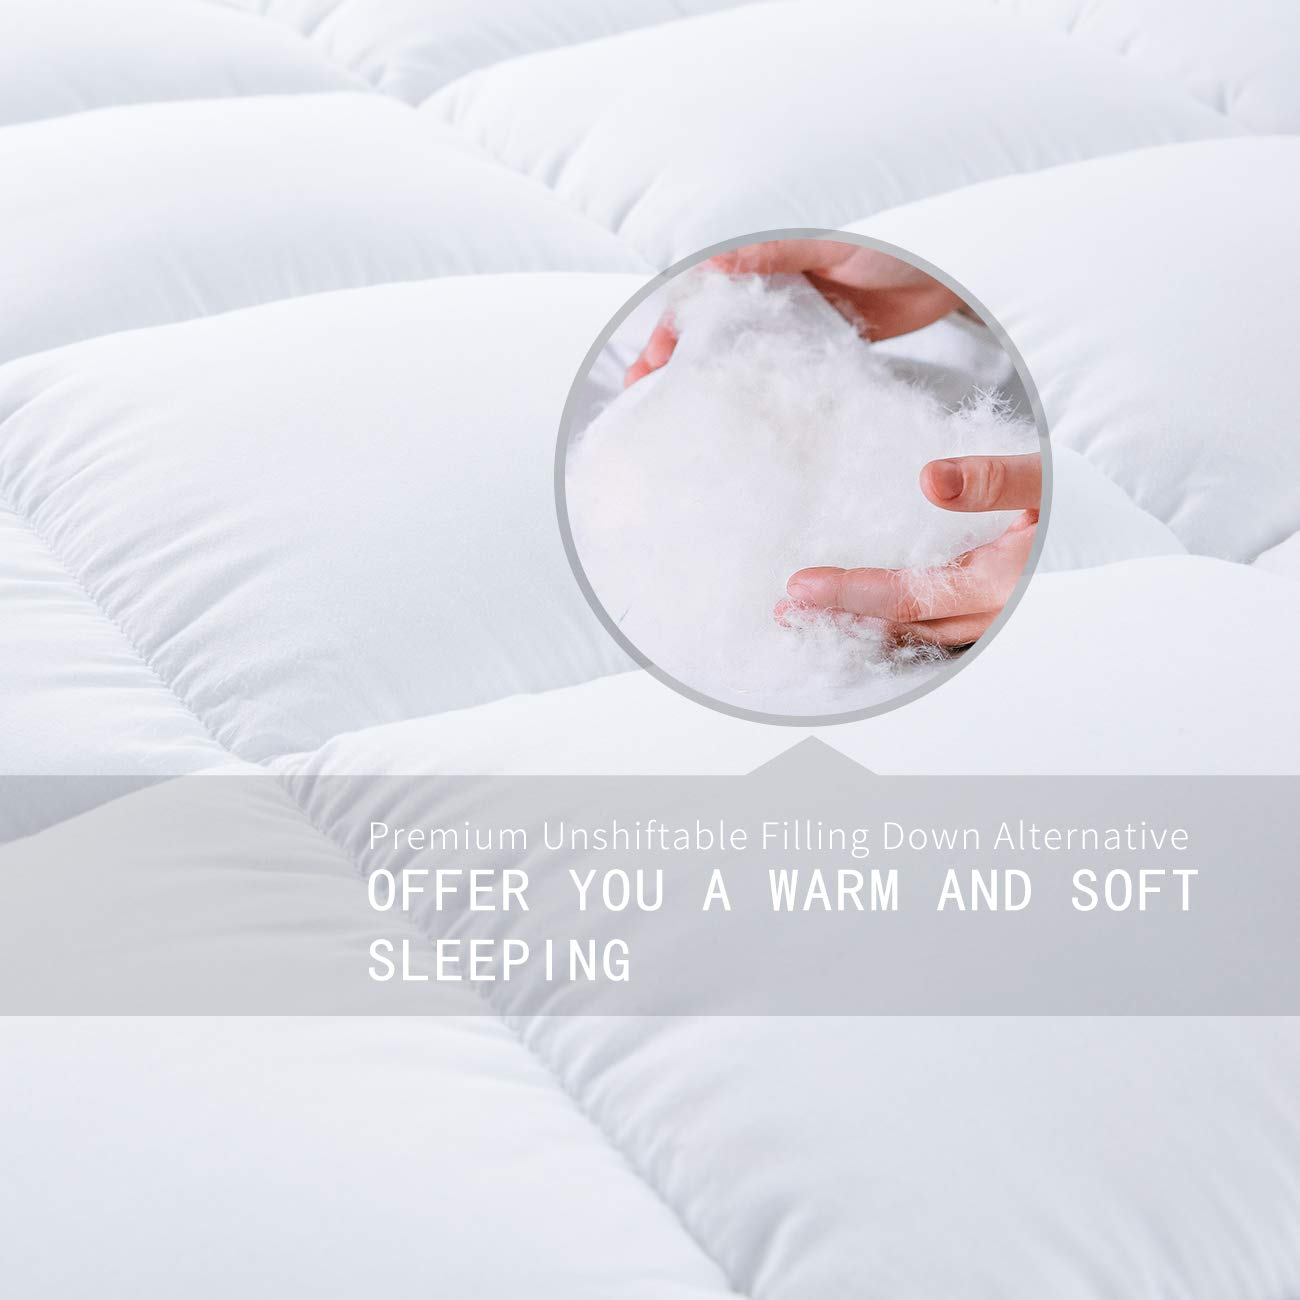 EcoMozz King Comforter with Corner Tabs - All Season Down Alternative Comforter - Soft Warm Quilted Duvet Insert - Hypoallergenic Fluffy Hotel Collection - White by EcoMozz (Image #4)